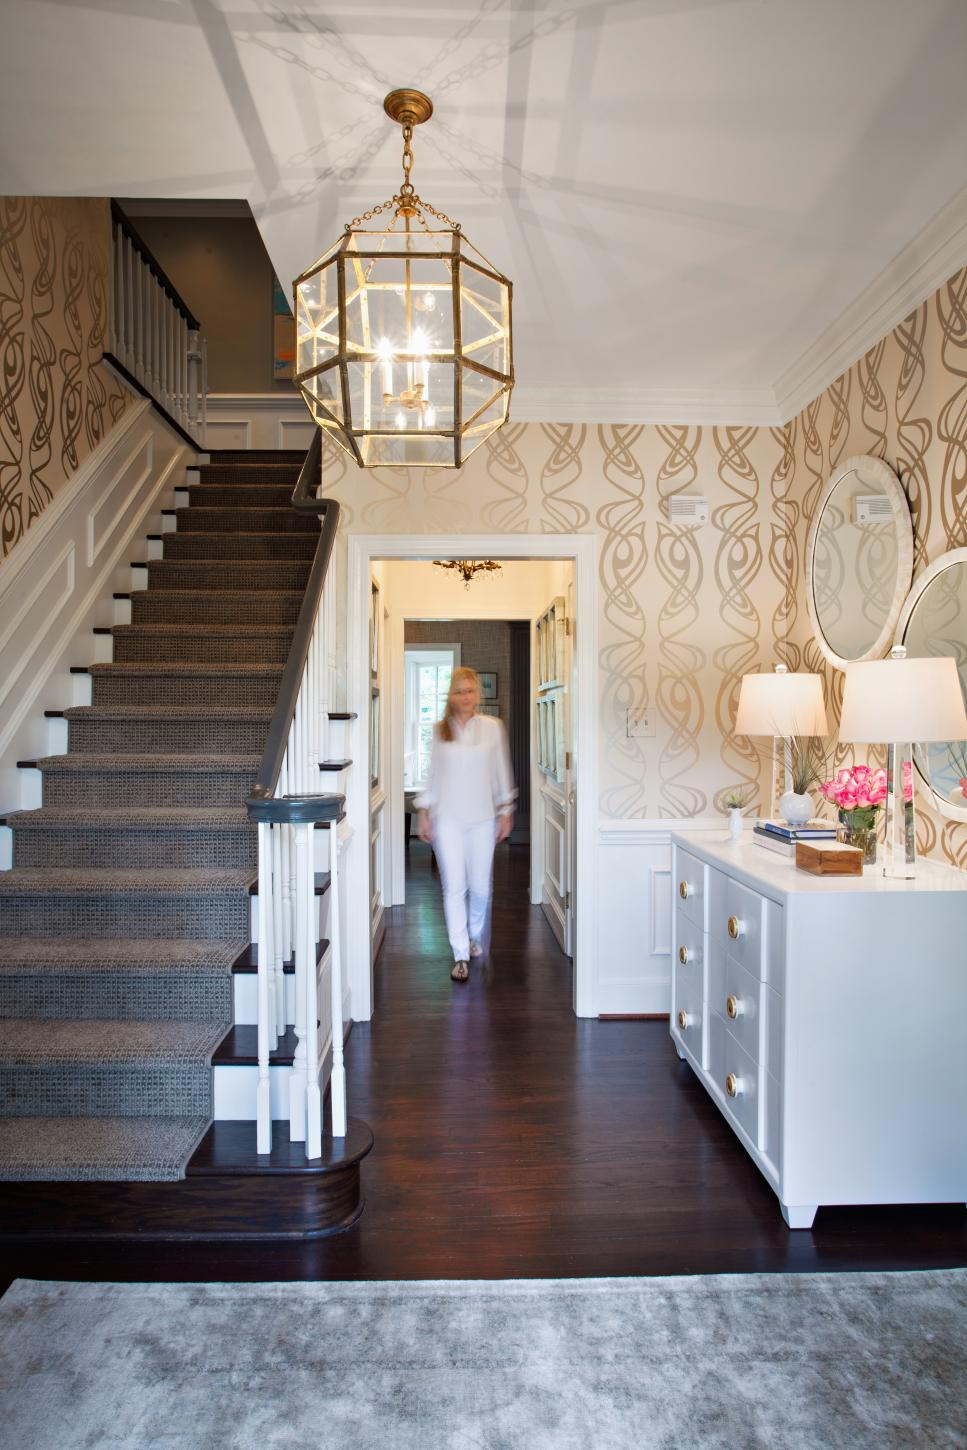 Foyer With Gold Light Fixture and Whimsical Wallpaper